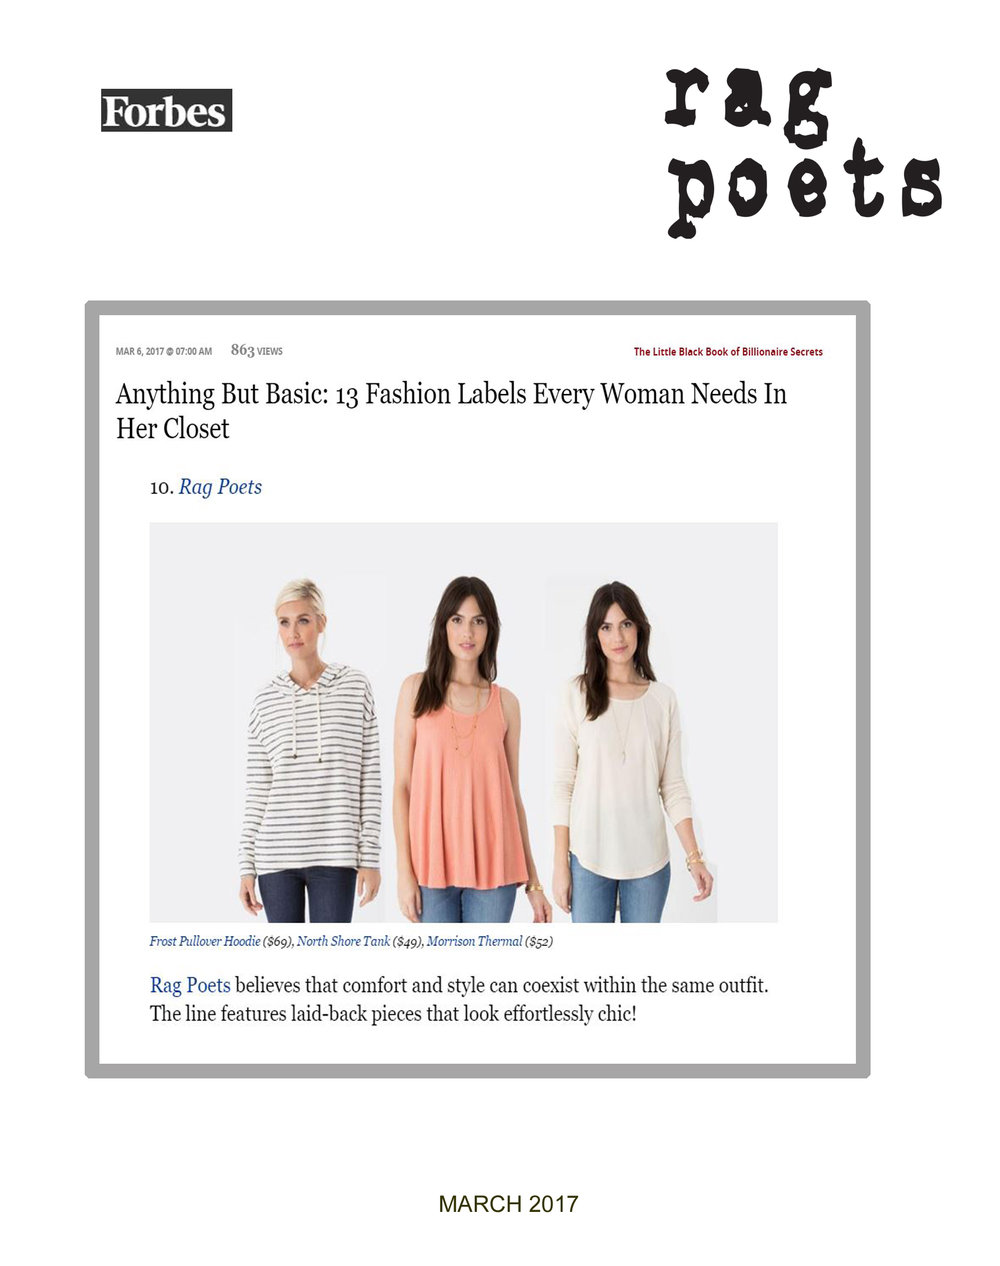 RagPoets_Forbes.com_March 2017.jpg